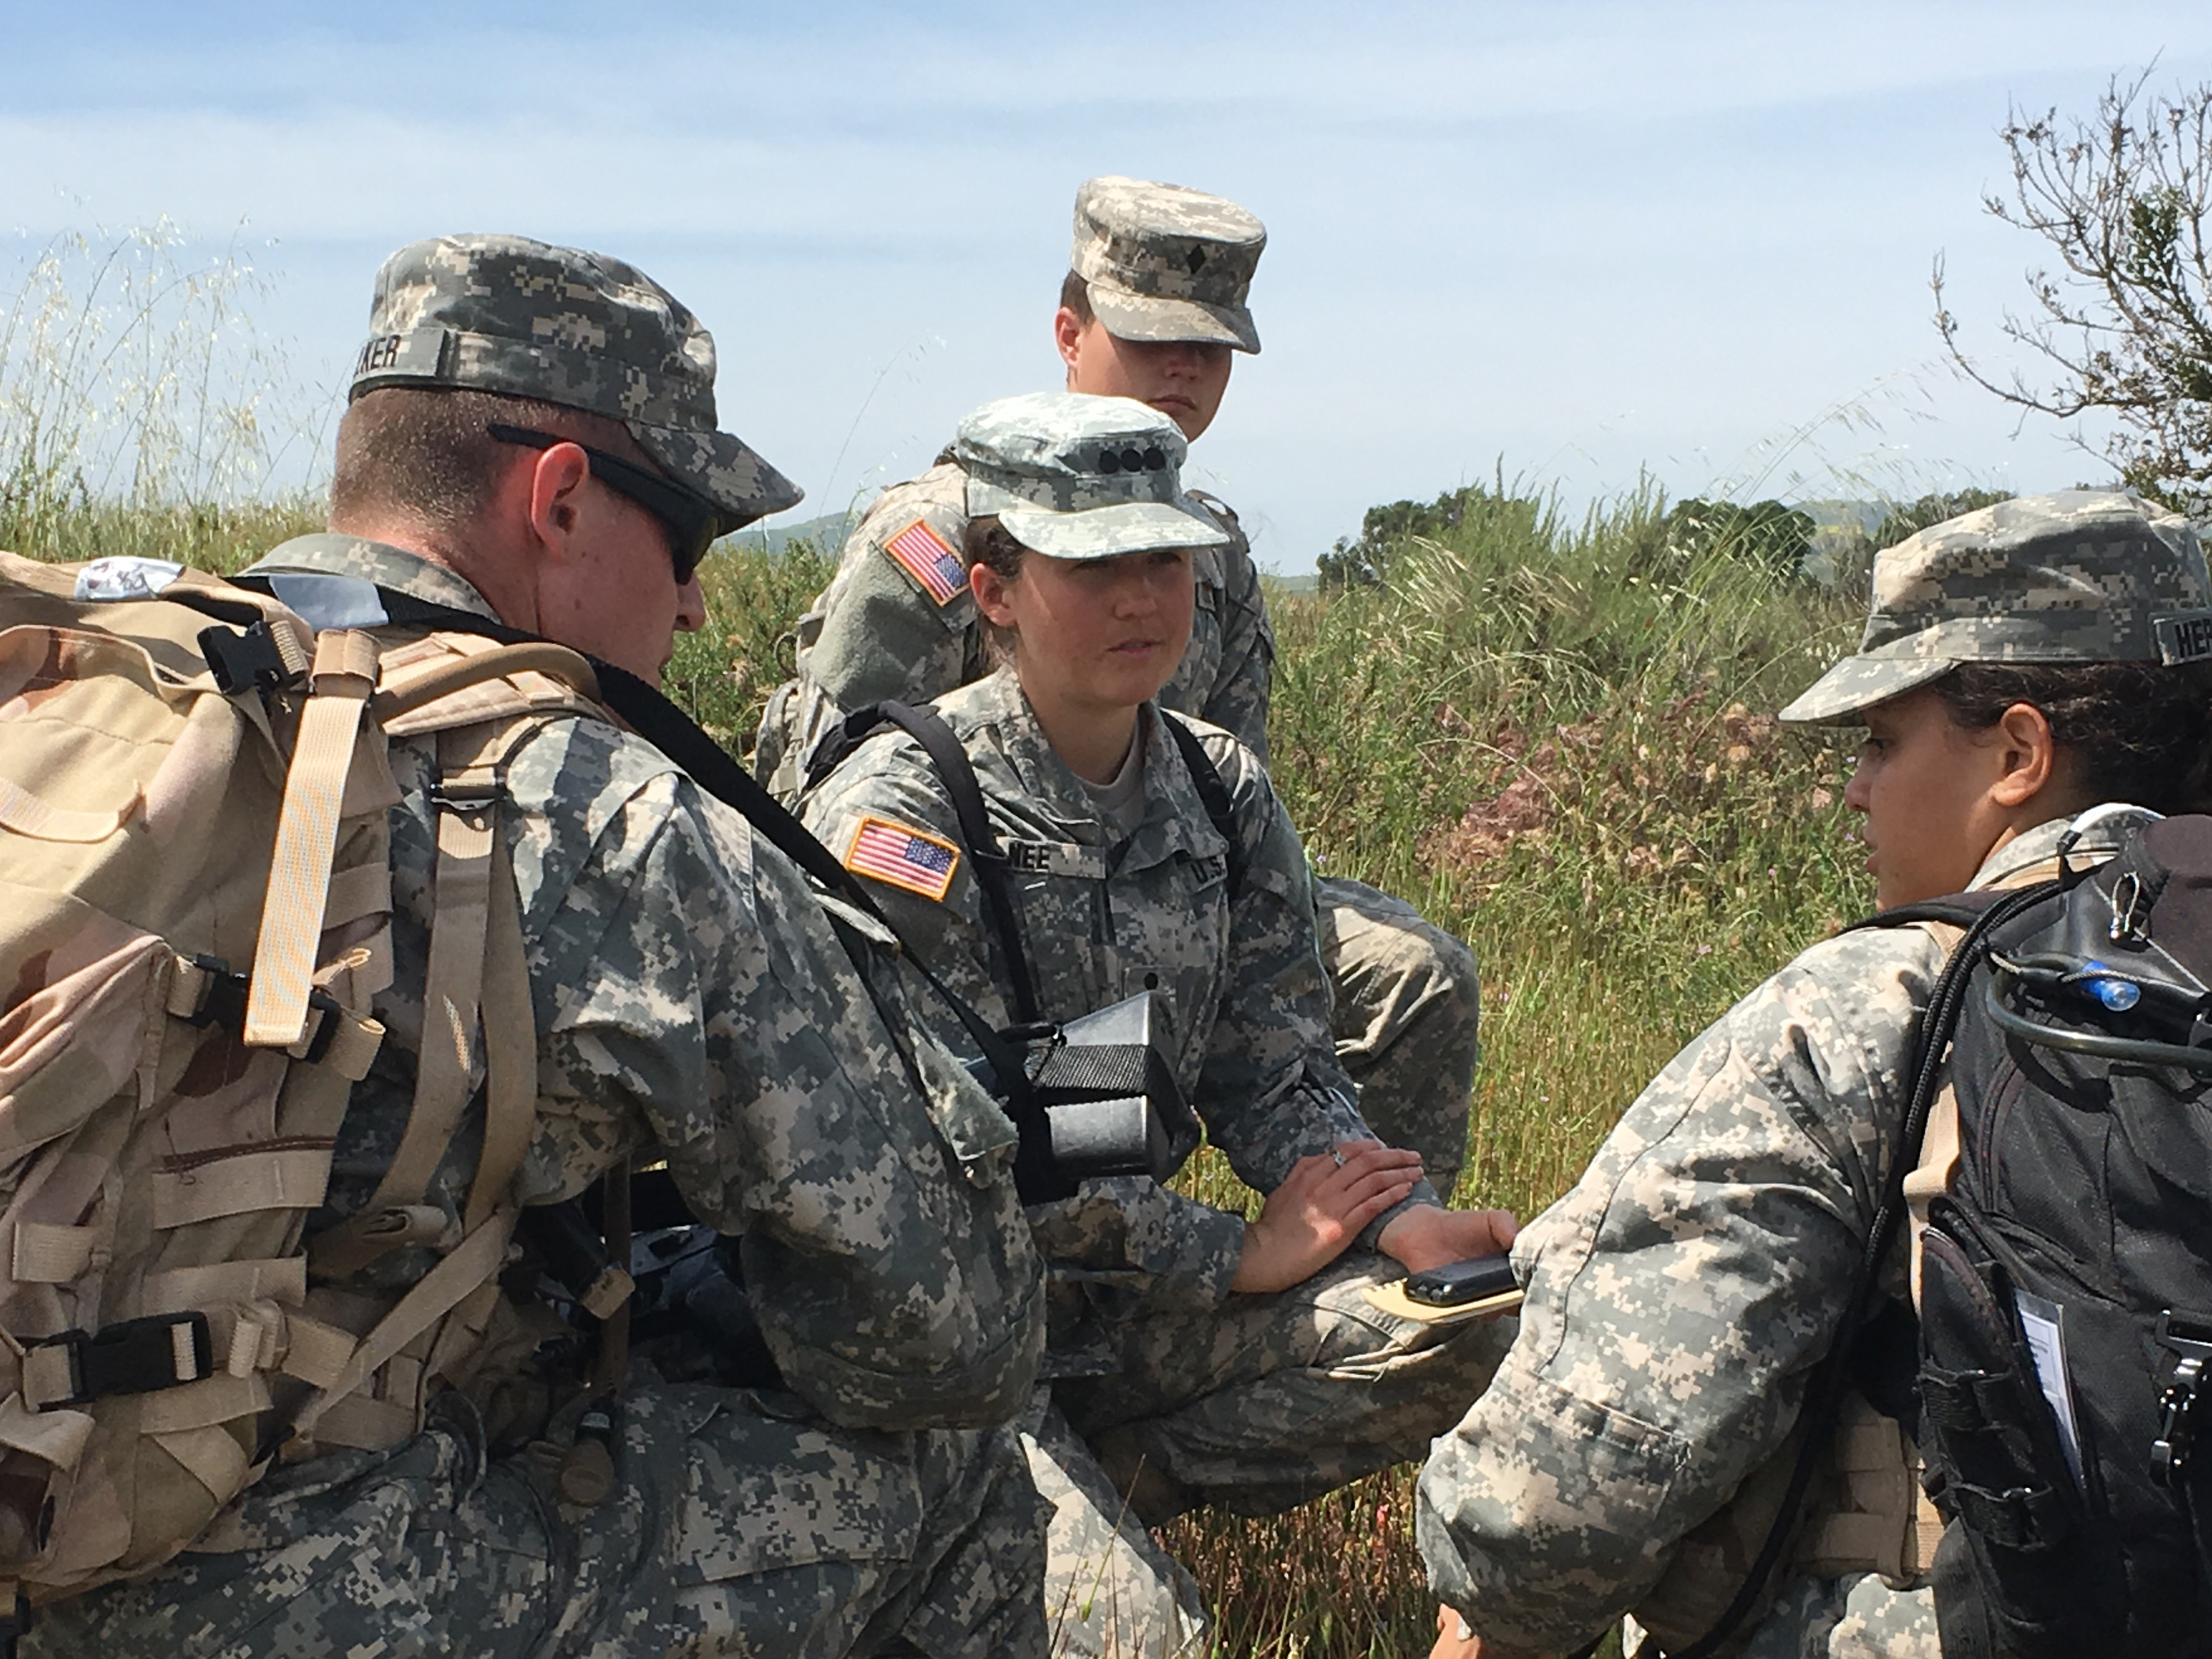 ROTC training takes place at Camp Pendleton